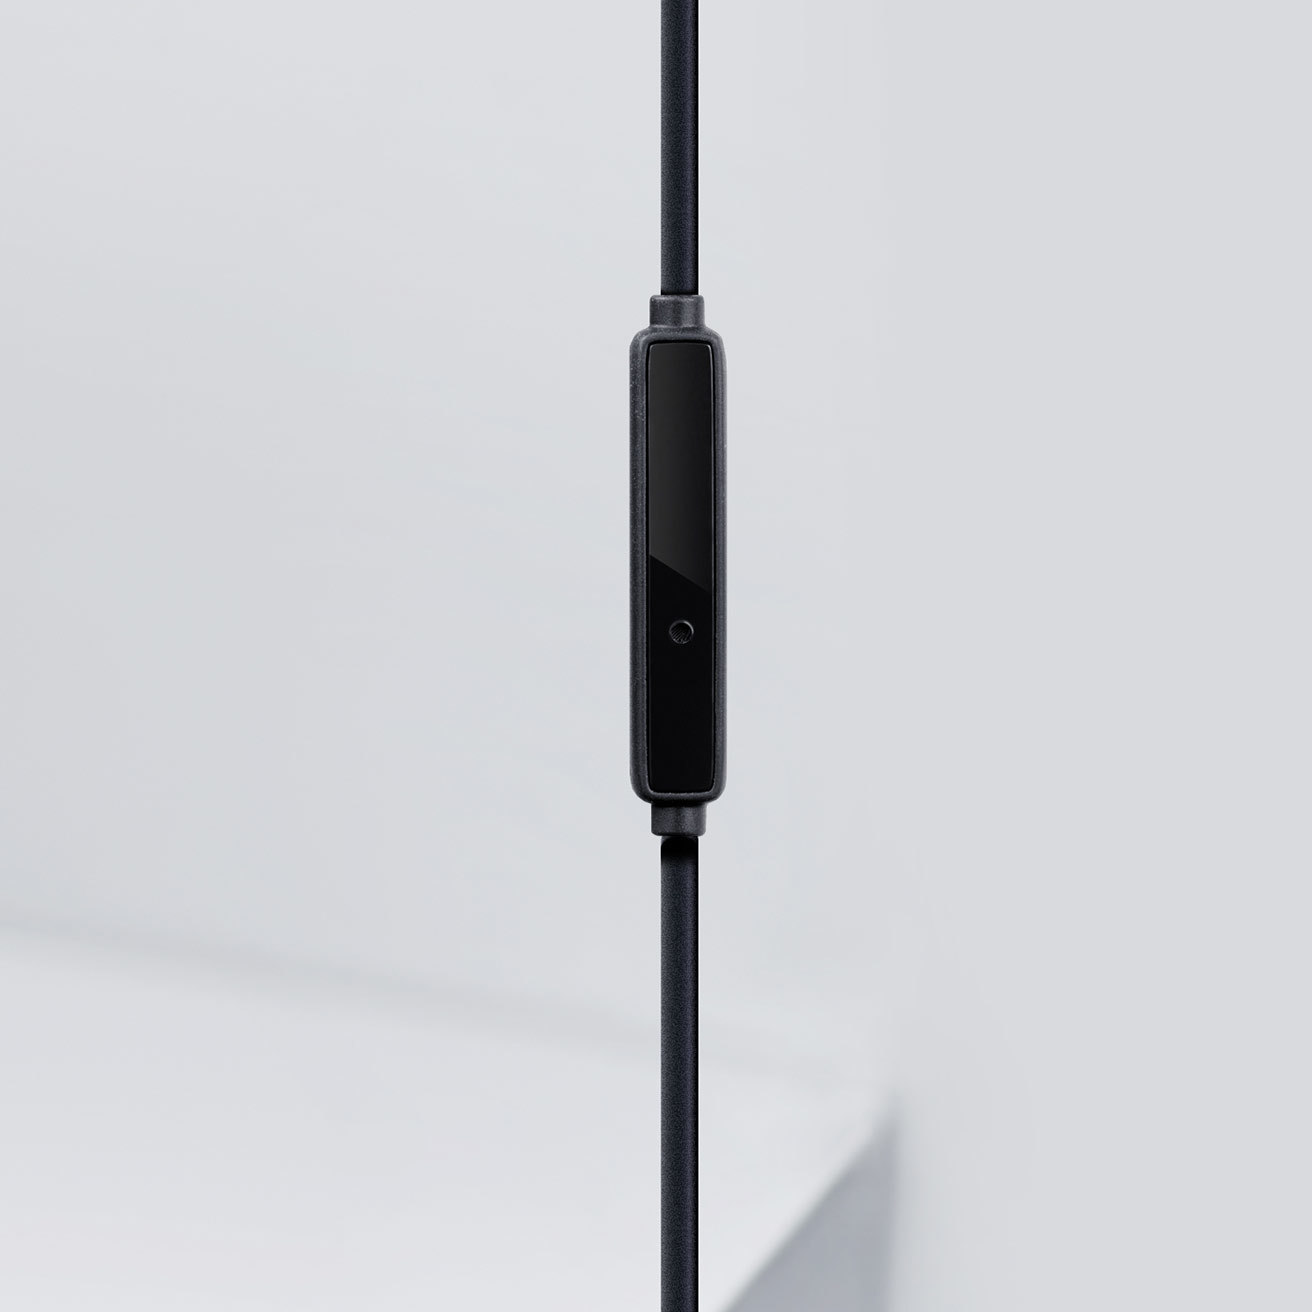 Sennheiser AMBEO Smart Headset - Mobile binaural recording